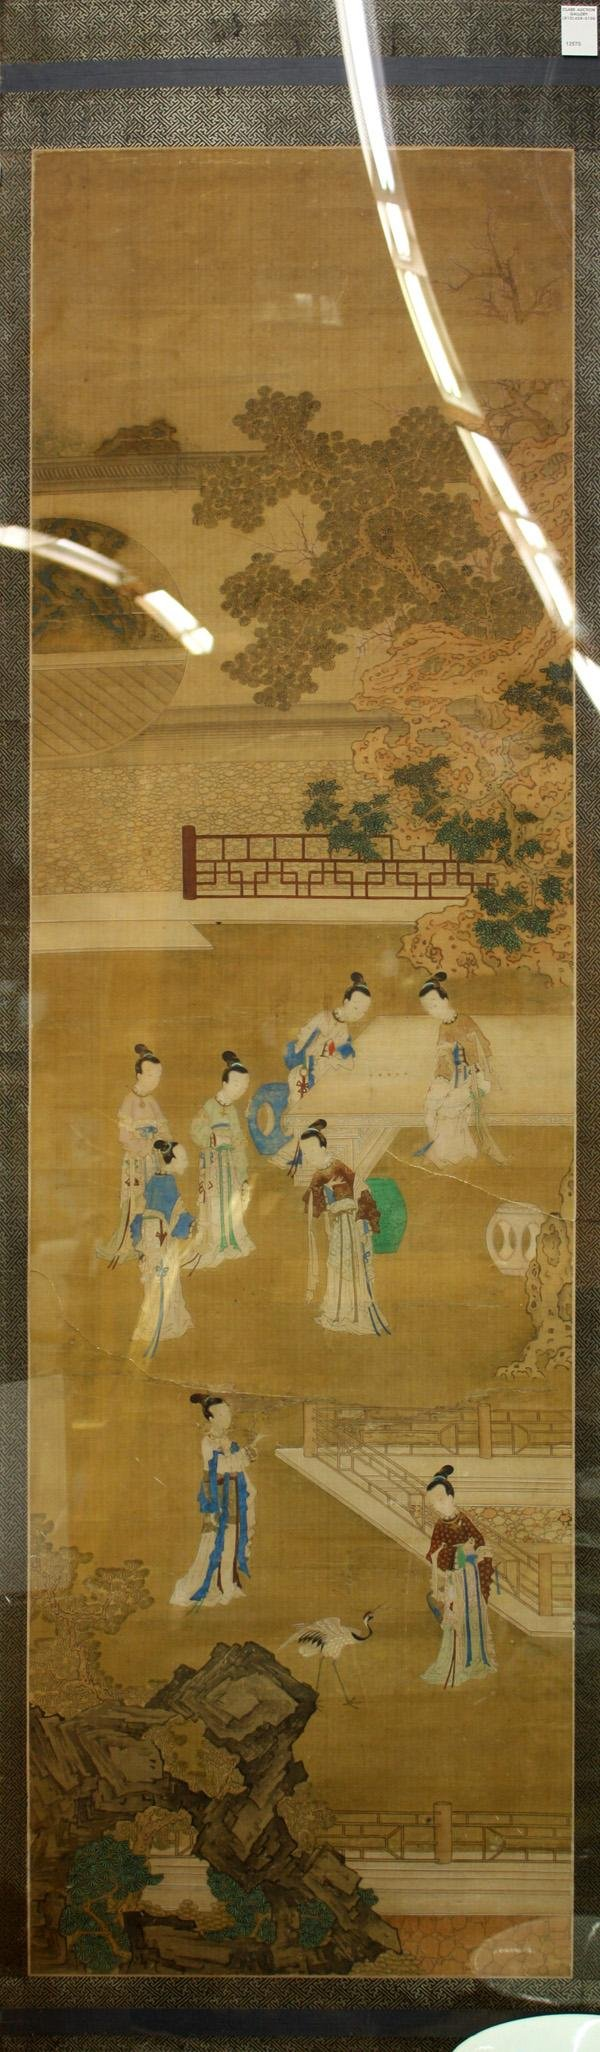 6477: Chinese Painting, Beauties in Courtyard, Qing dyn